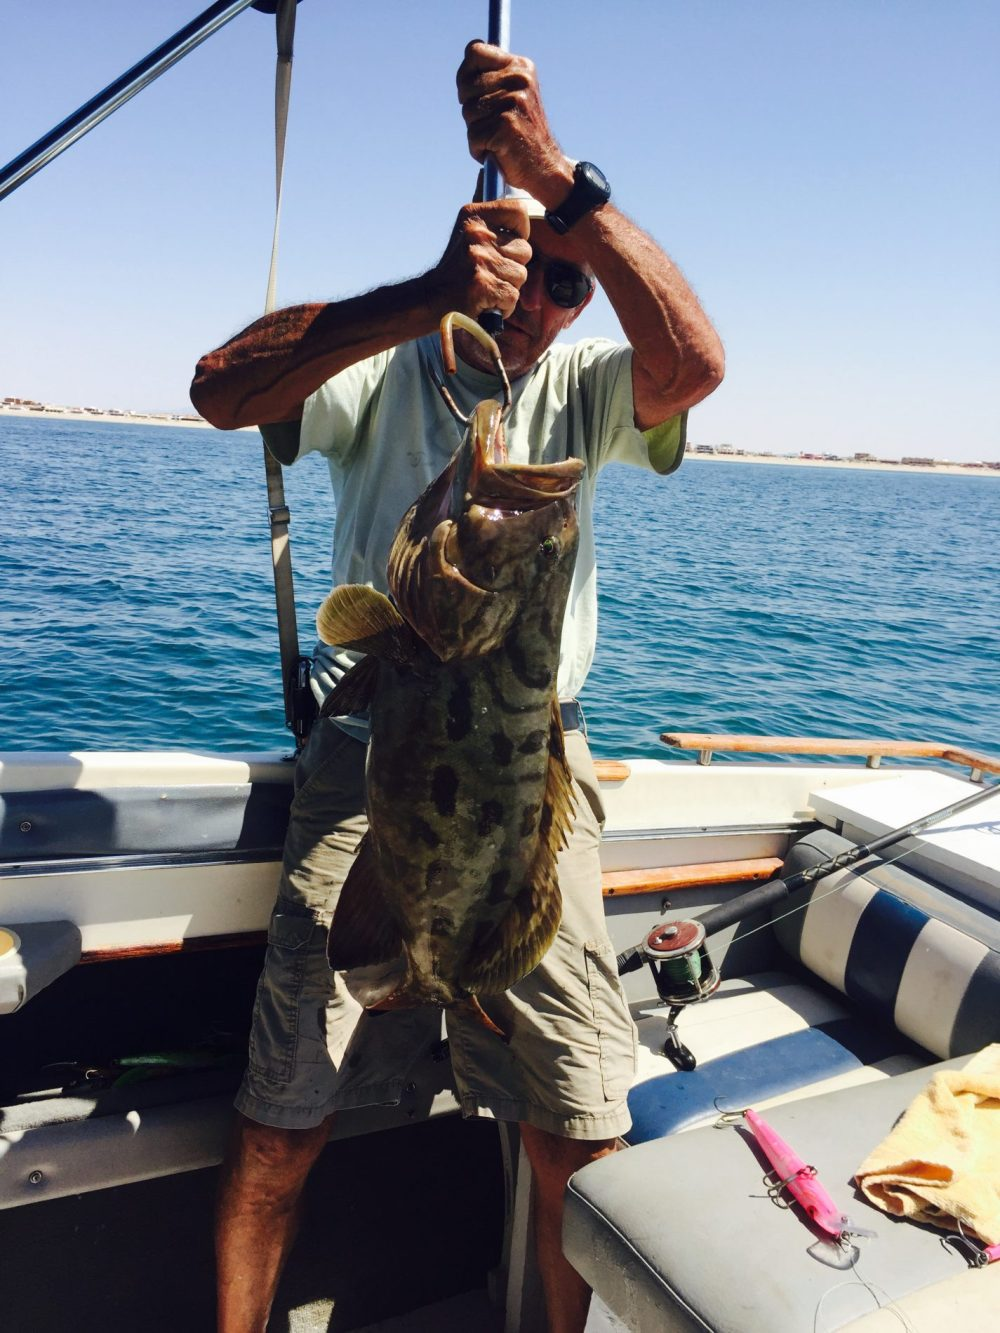 Tom Giljum, avid VGA golfer and avid fisherman has acquired a Nirvana of sorts. He golfs with VGA on many occasions all the while living in Rocky Point in Mexico, where he catches fish like the Grouper shown. All this a mile from his home in Mexico. Does it get any better than this?